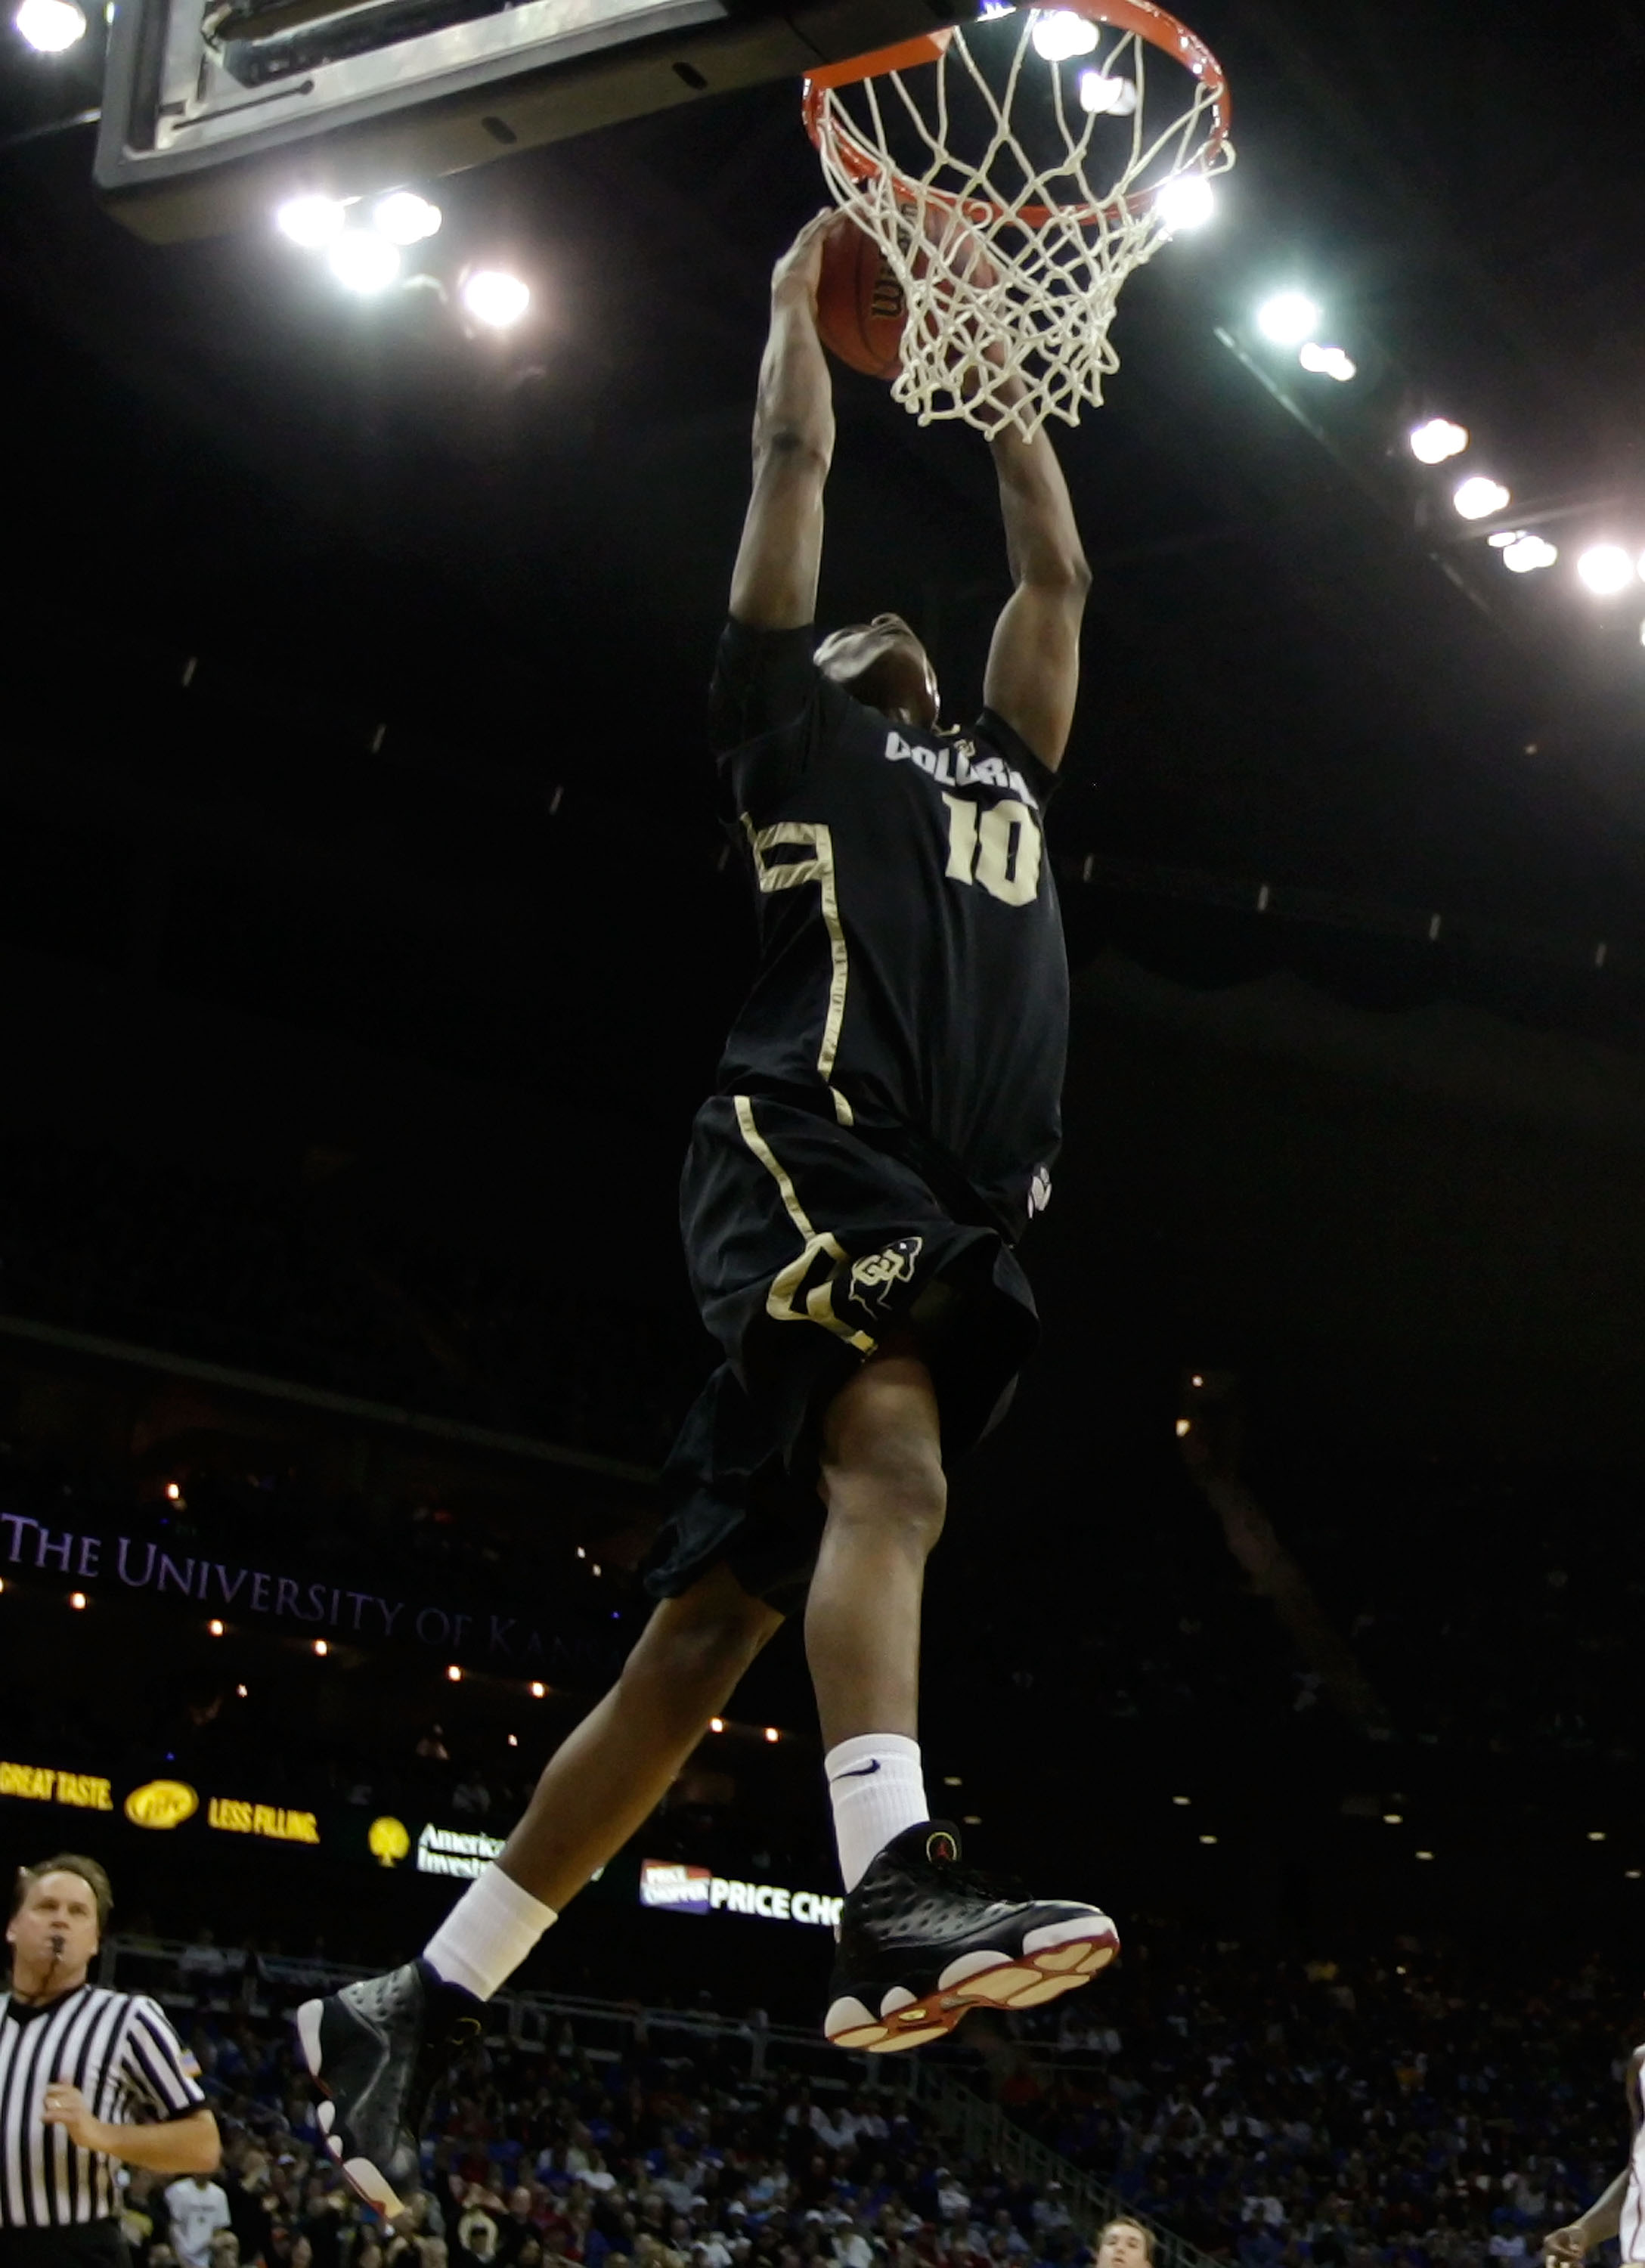 Burks will excite many crowds with his explosive leaping ability.